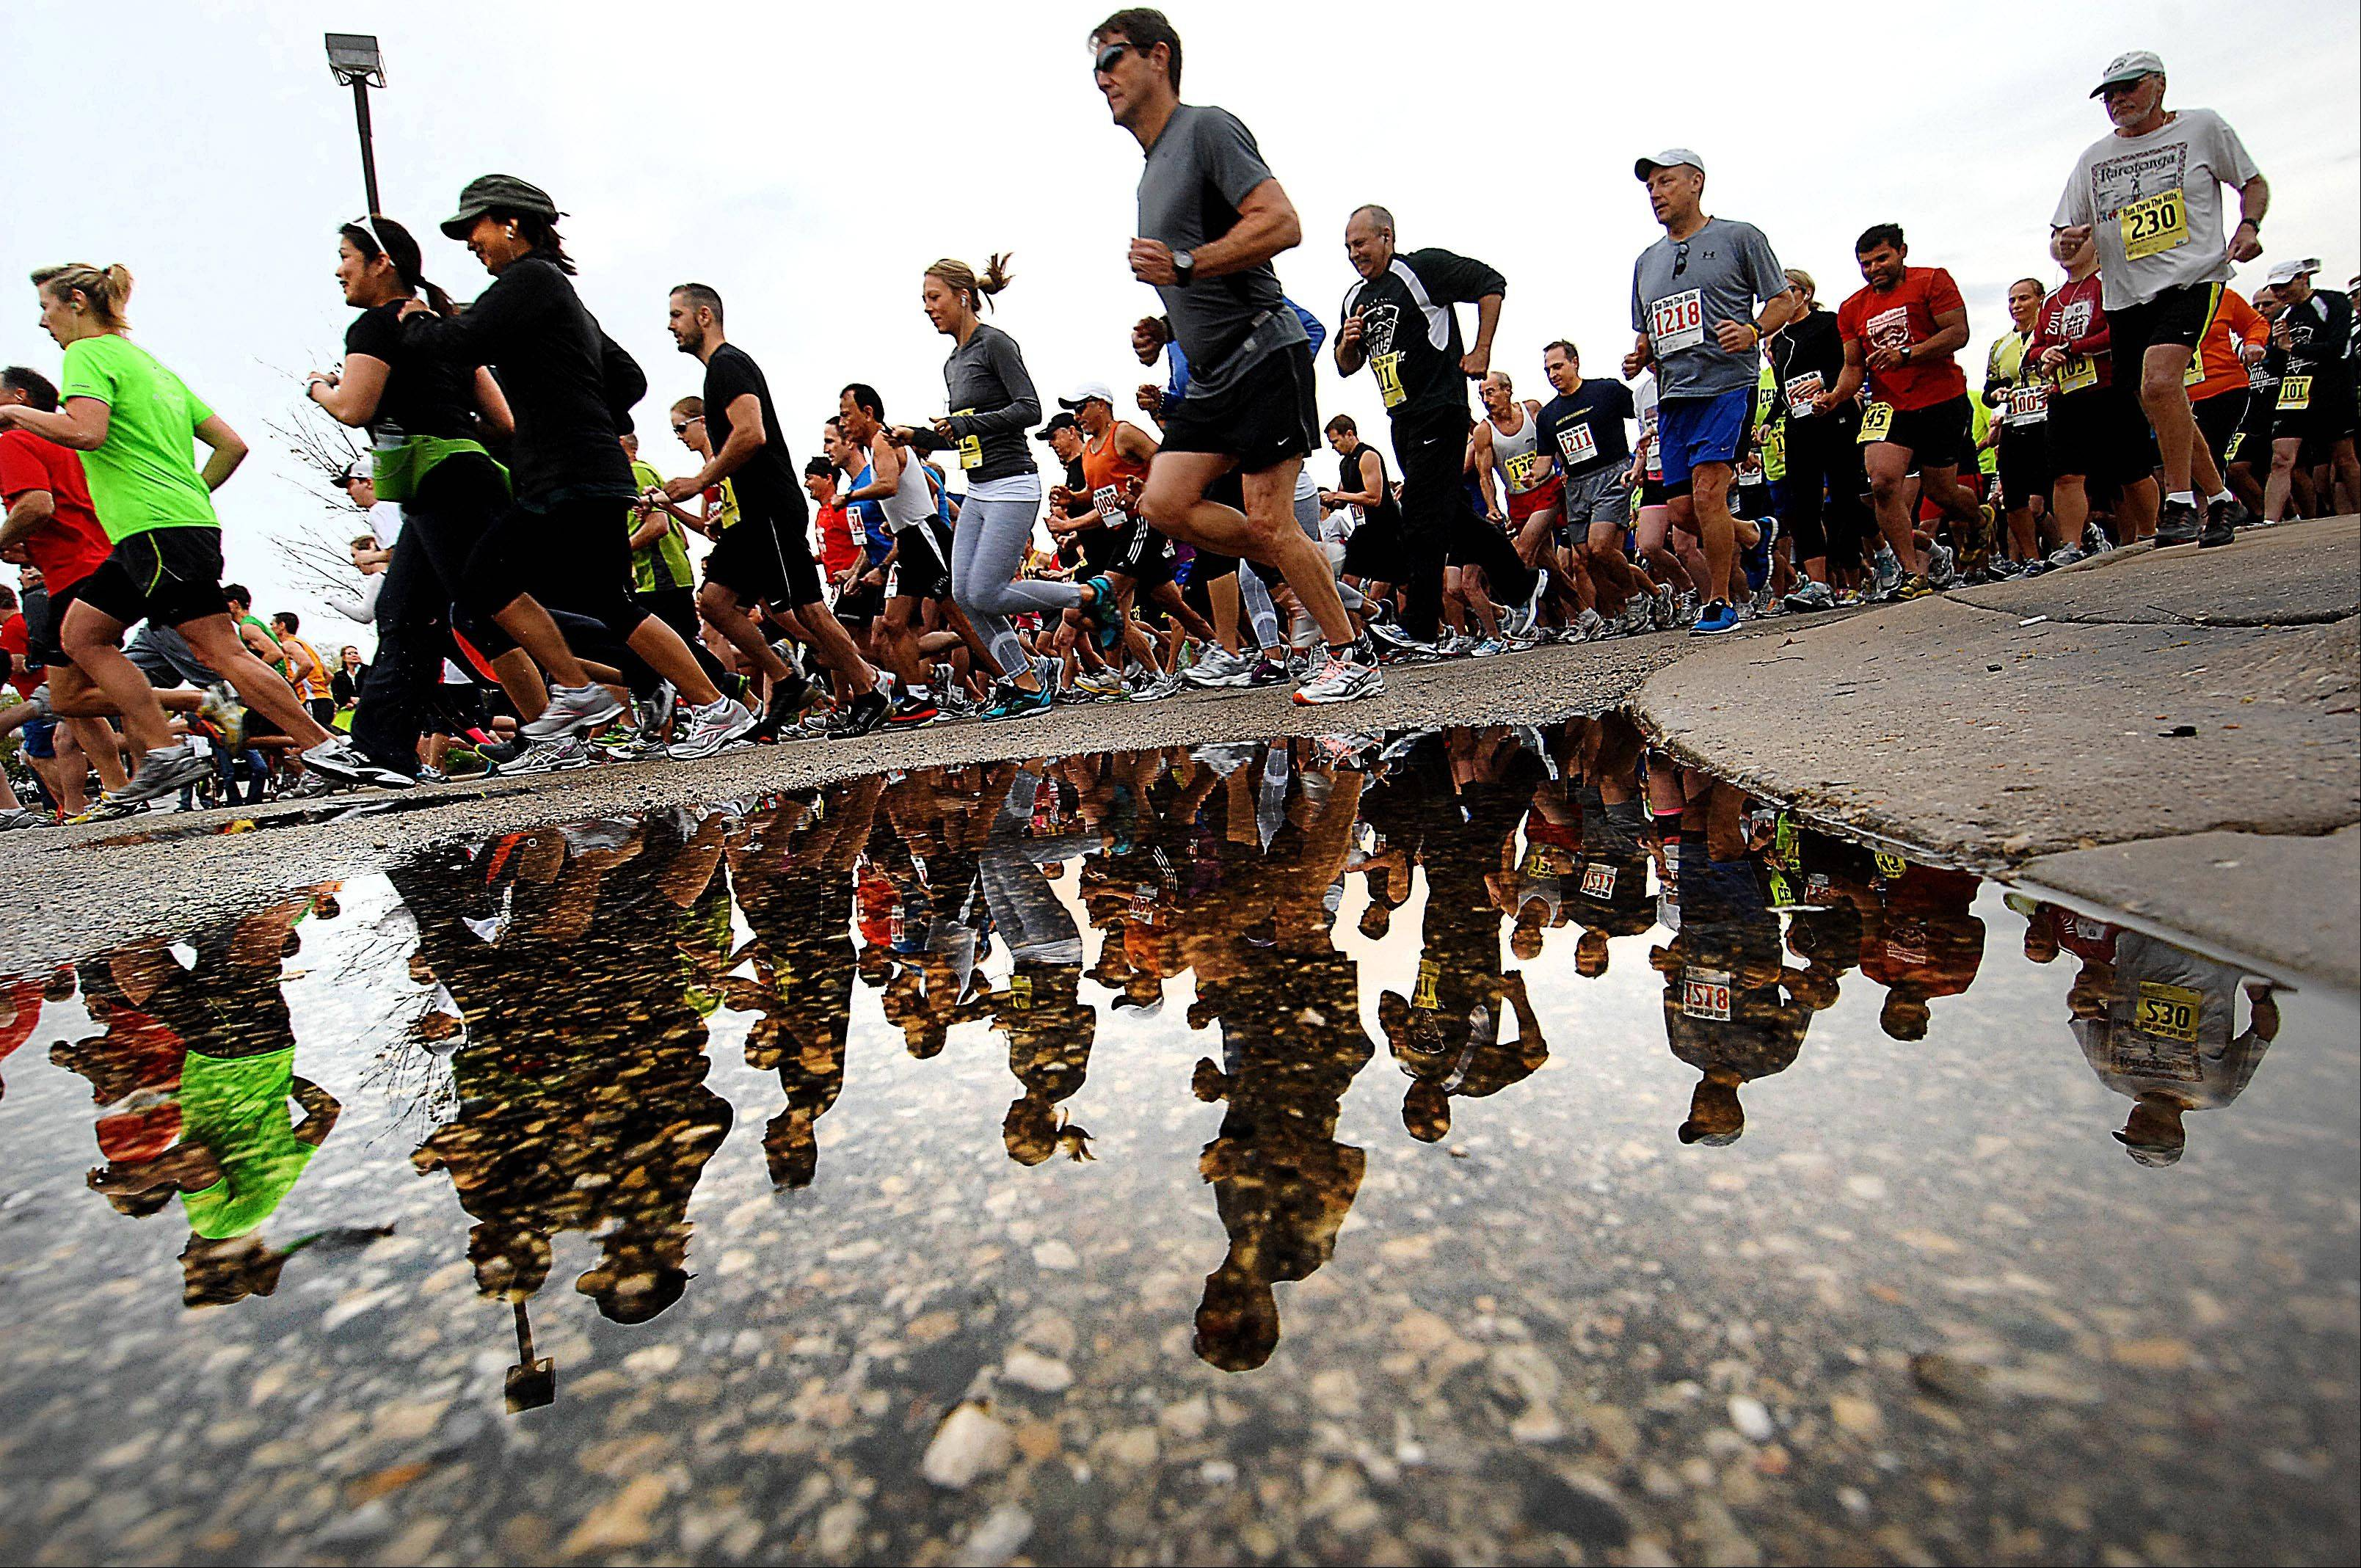 Racers are reflected in a puddle at the start of Sunday morning's Run Through The Hills 5K and 10K road races in Lake in the Hills.